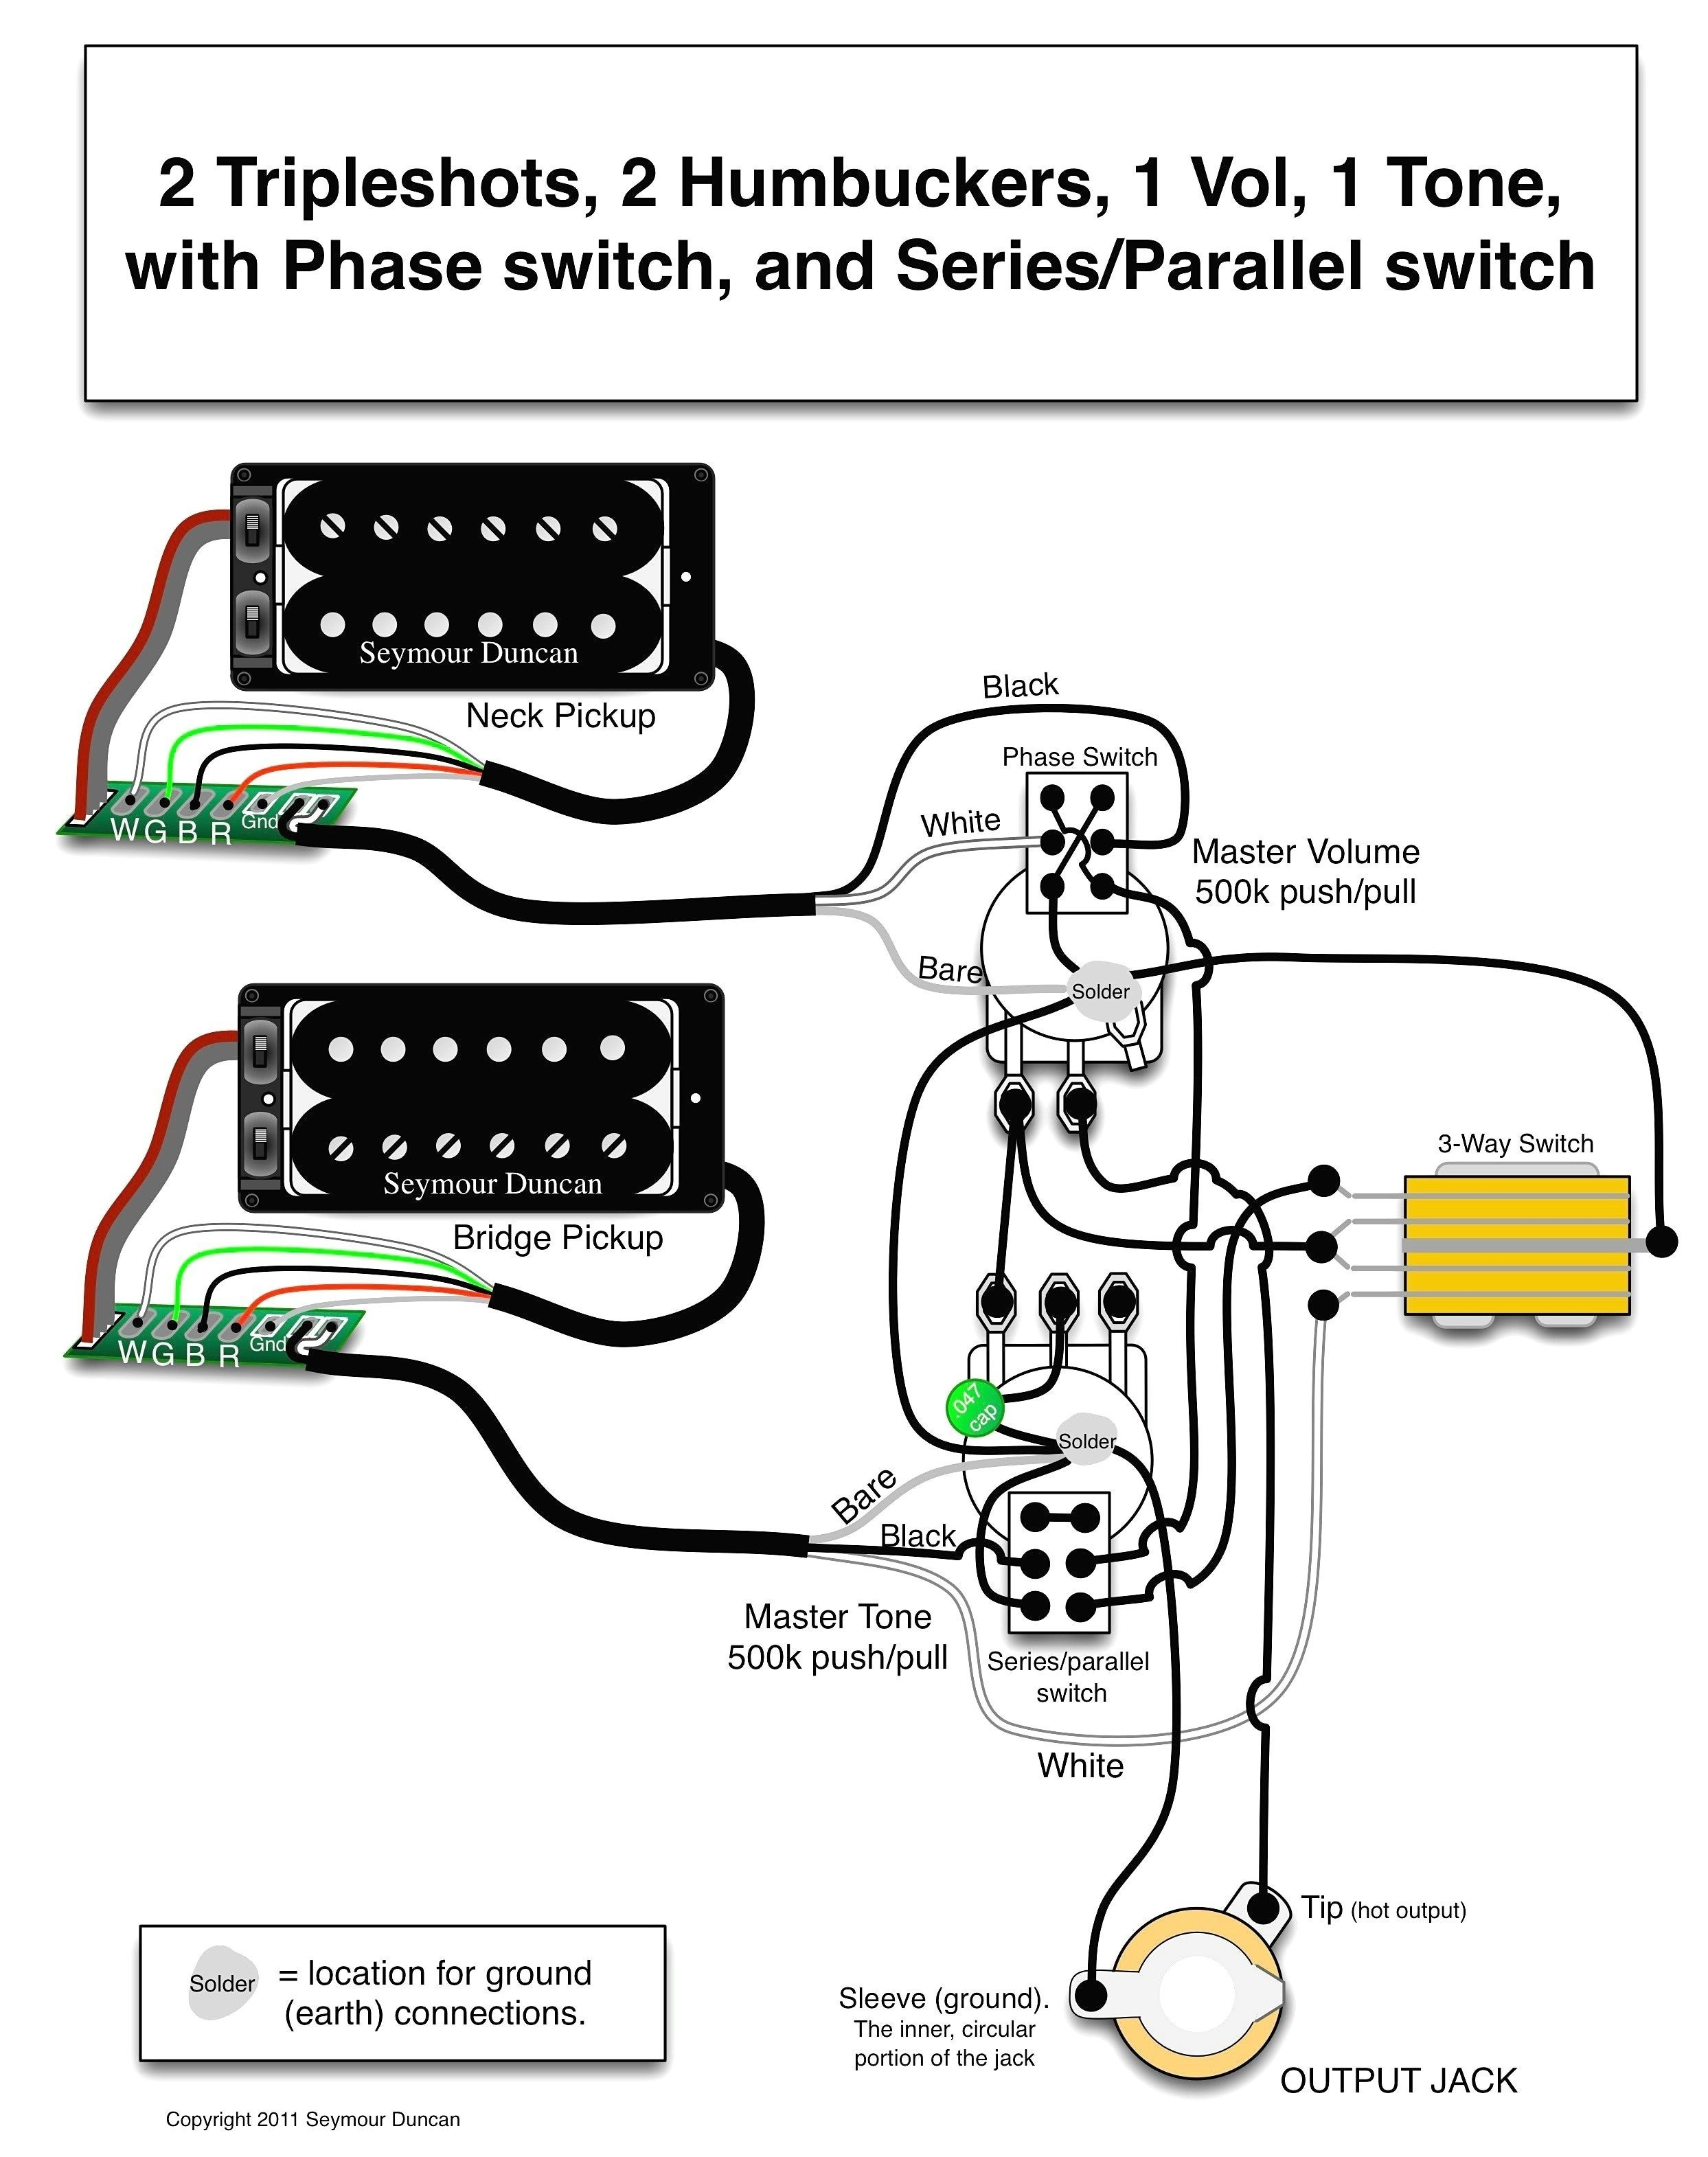 Diagram 2013 Gibson Les Paul Studio Wiring Diagram Full Version Hd Quality Wiring Diagram Diagramgehlc Abacusfirenze It